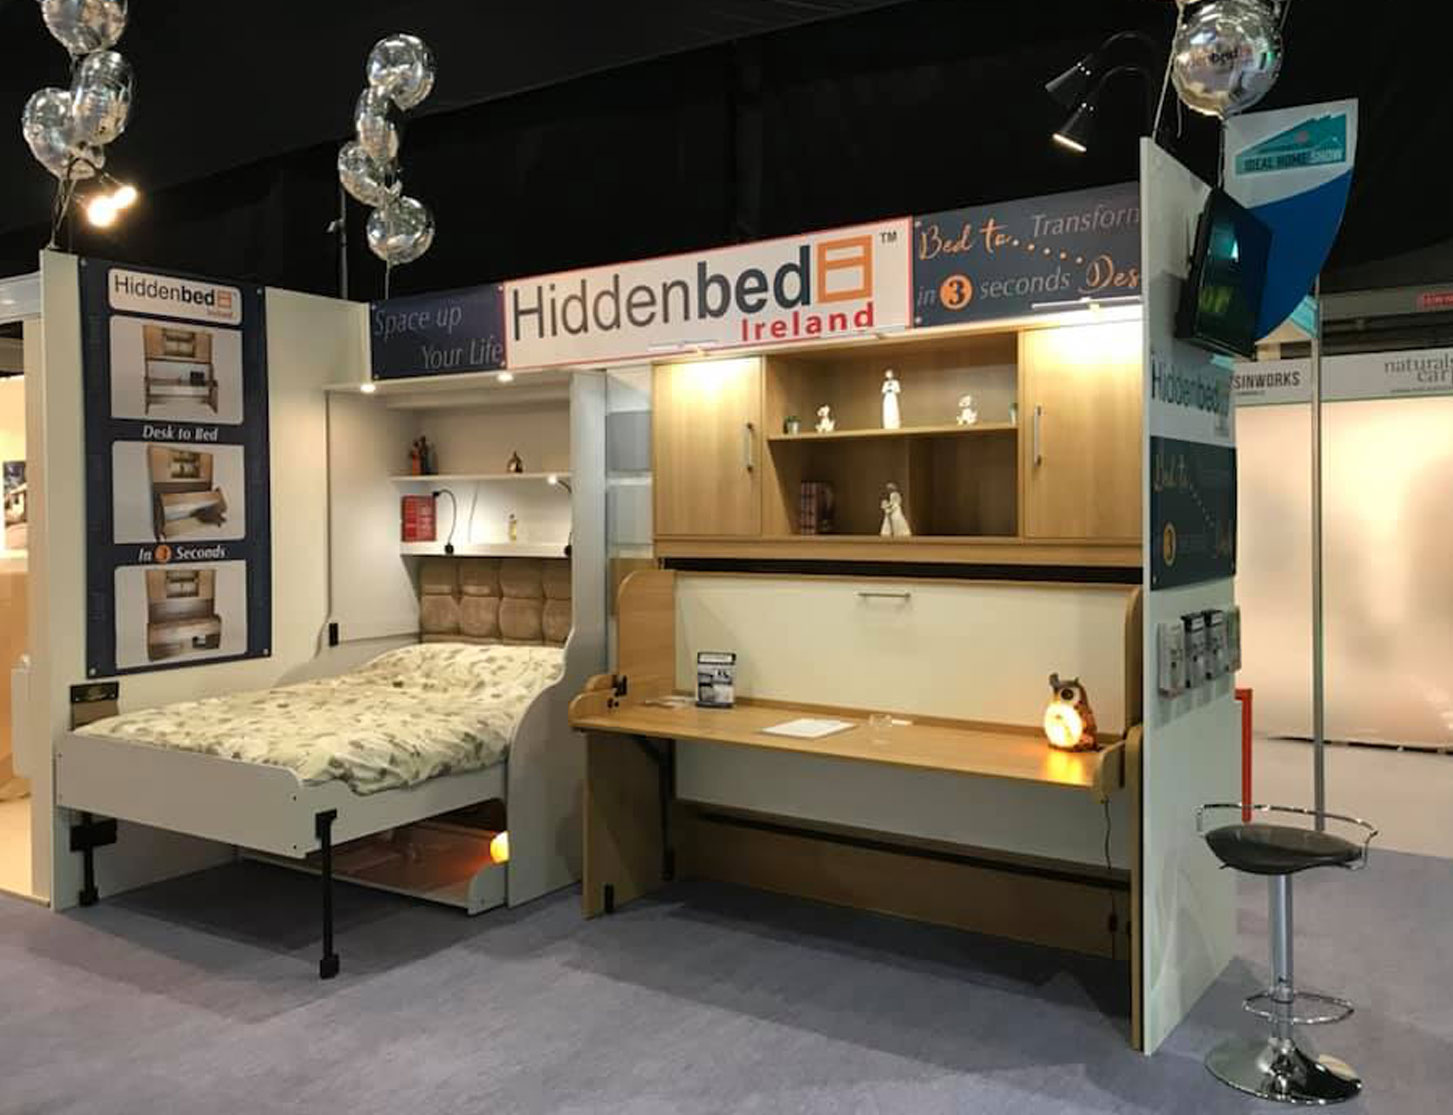 hiddenbed tradeshow